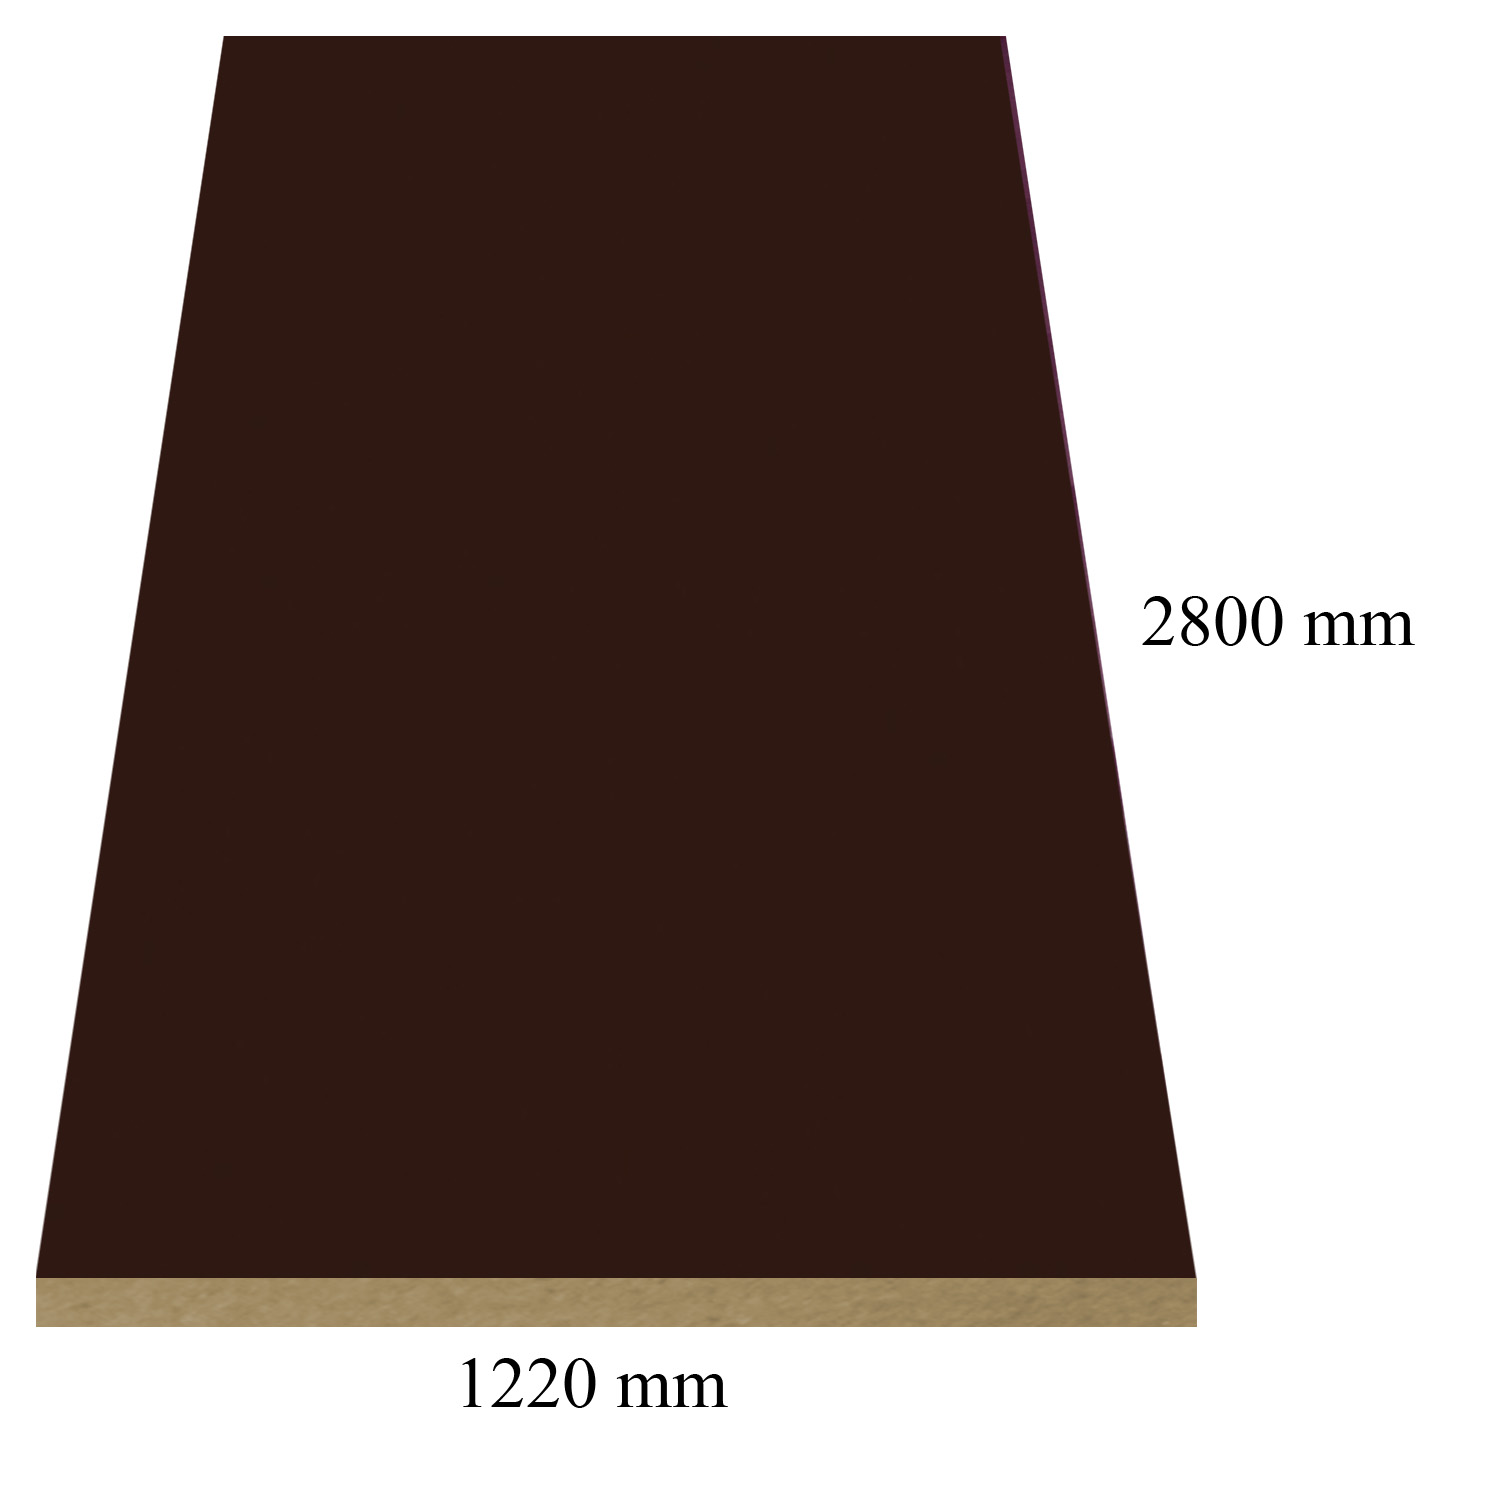 149 Brown high gloss - PVC coated 18 mm MDF